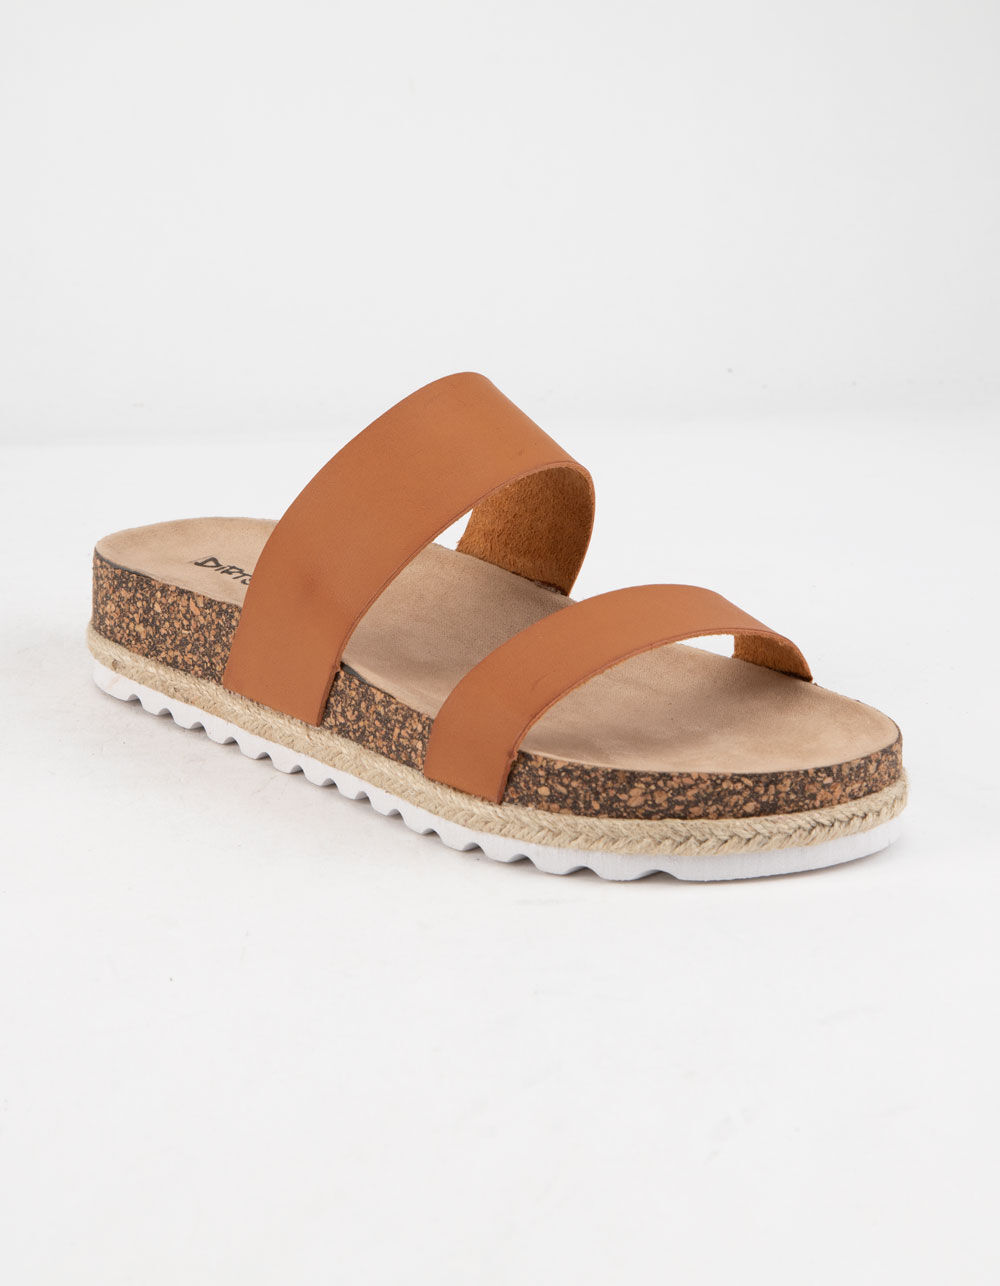 Image of DIRTY LAUNDRY DOUBLE PLAY COGNAC ESPADRILLE FLATFORM SANDALS